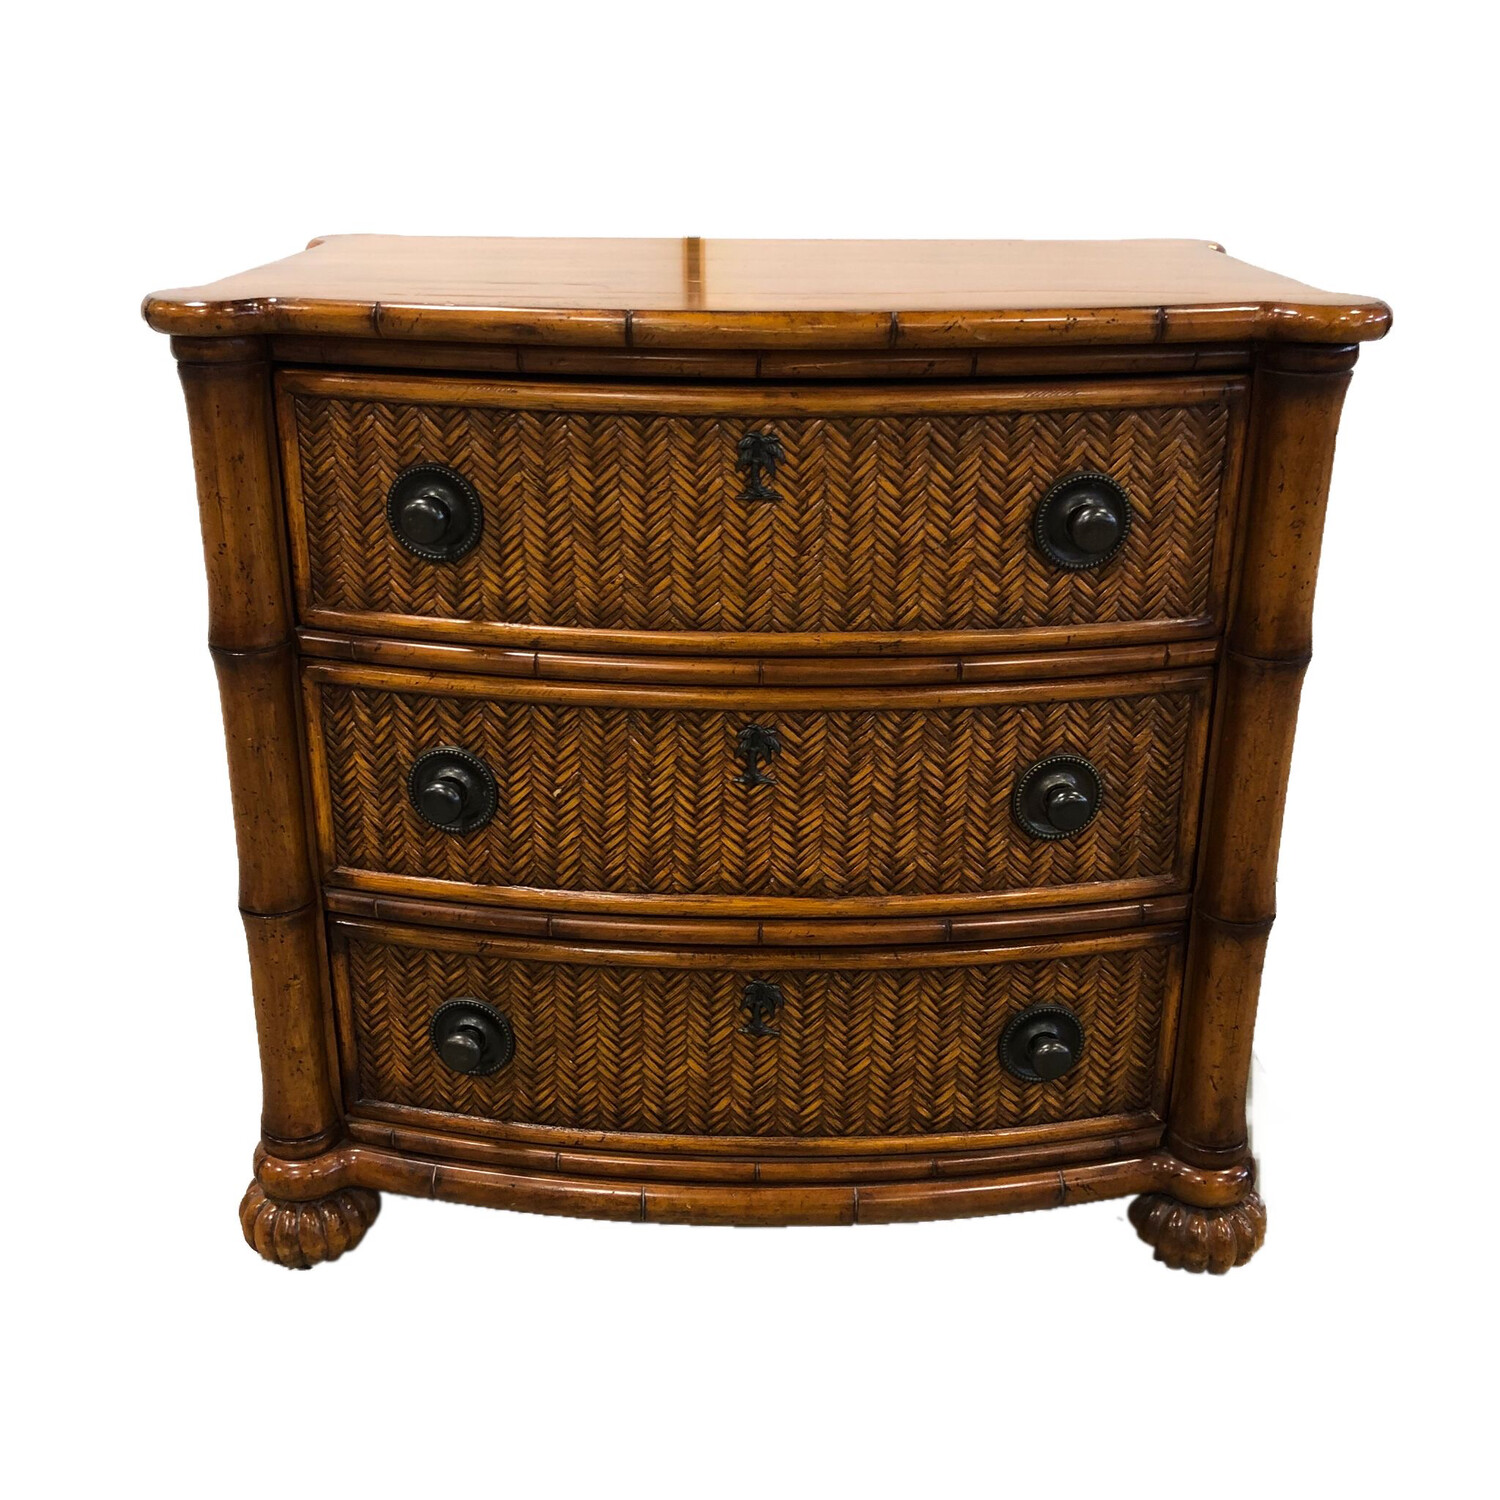 Tommy Bahama for Lexington Furniture 3-Drawer Wicker and Wood Nightstand